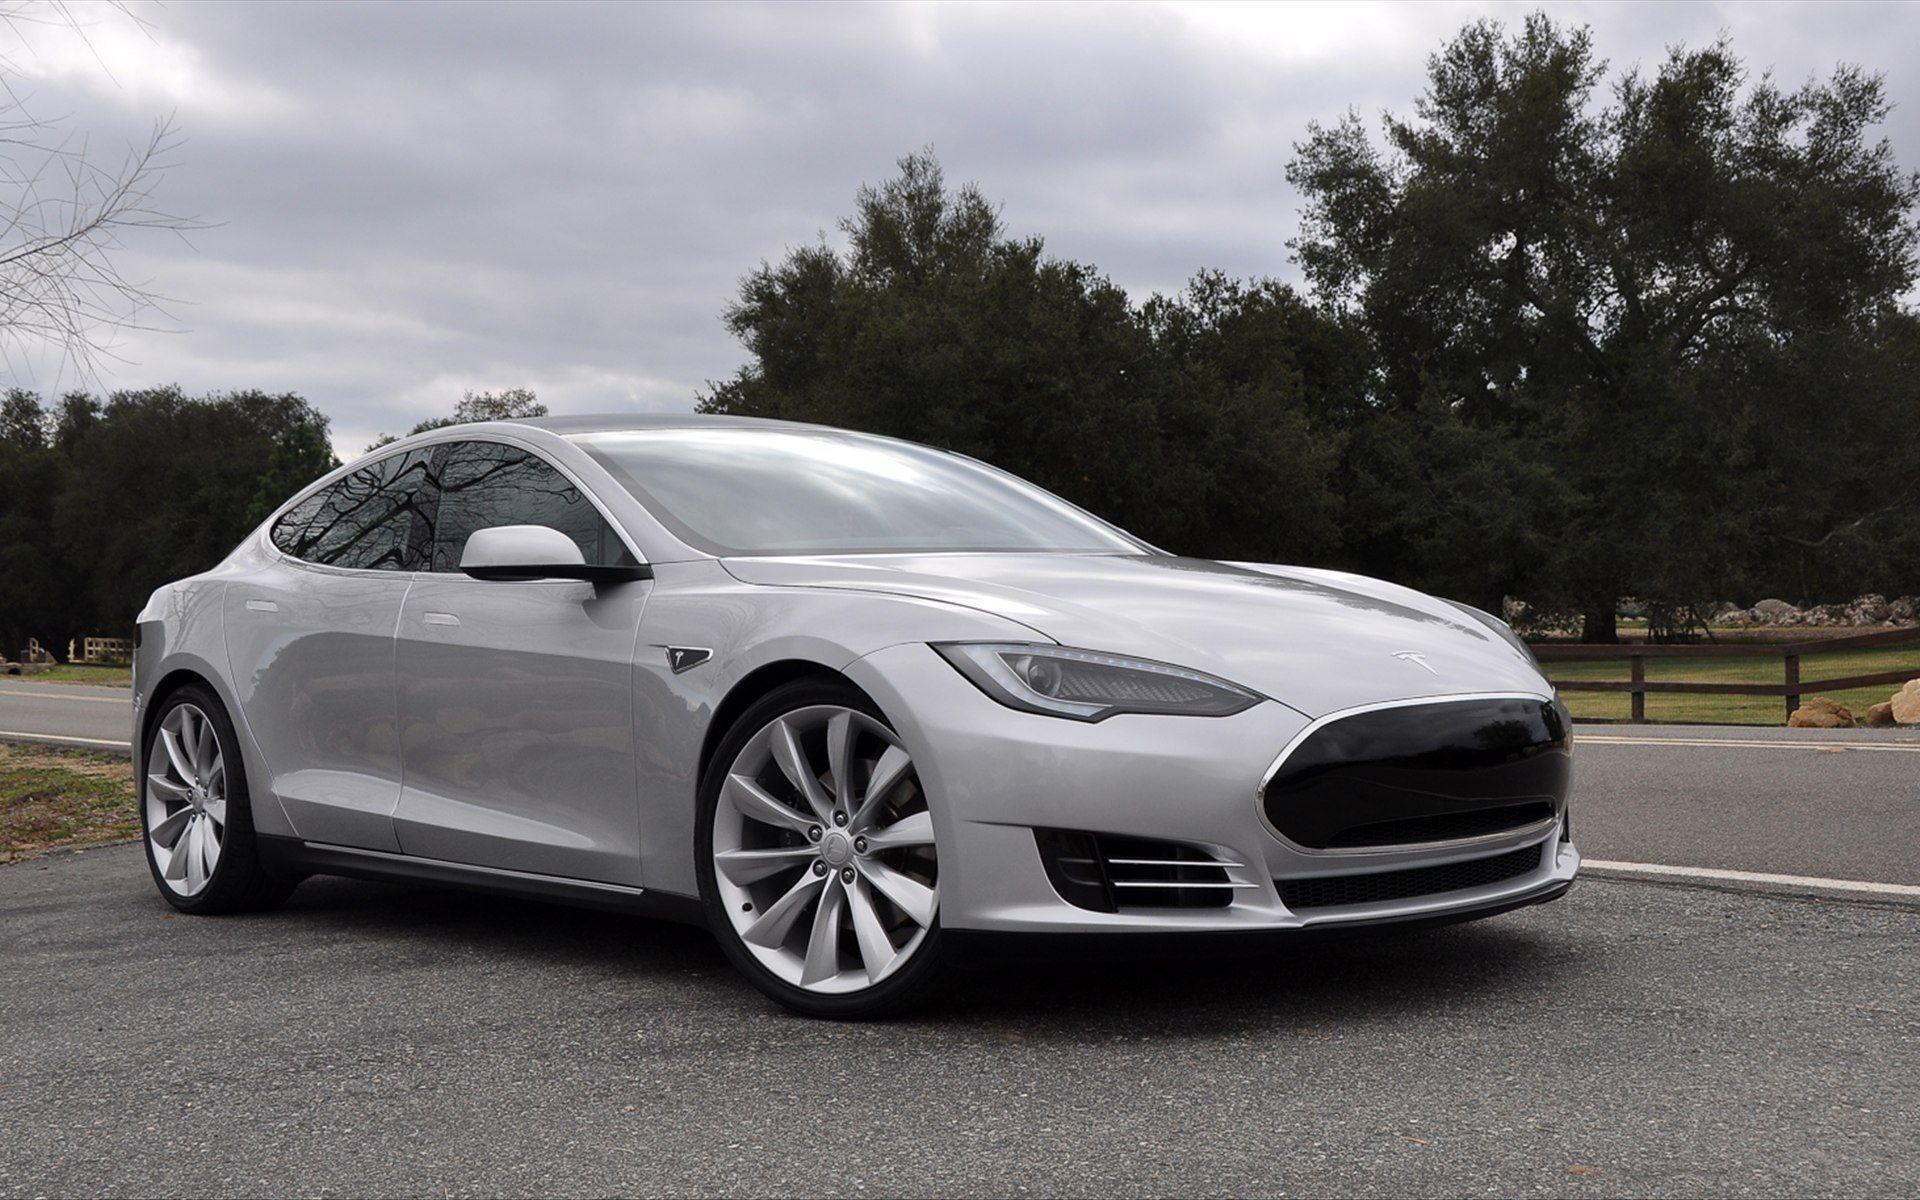 New 2015 Tesla Model S Wallpapers, Download Free HD Wallpapers